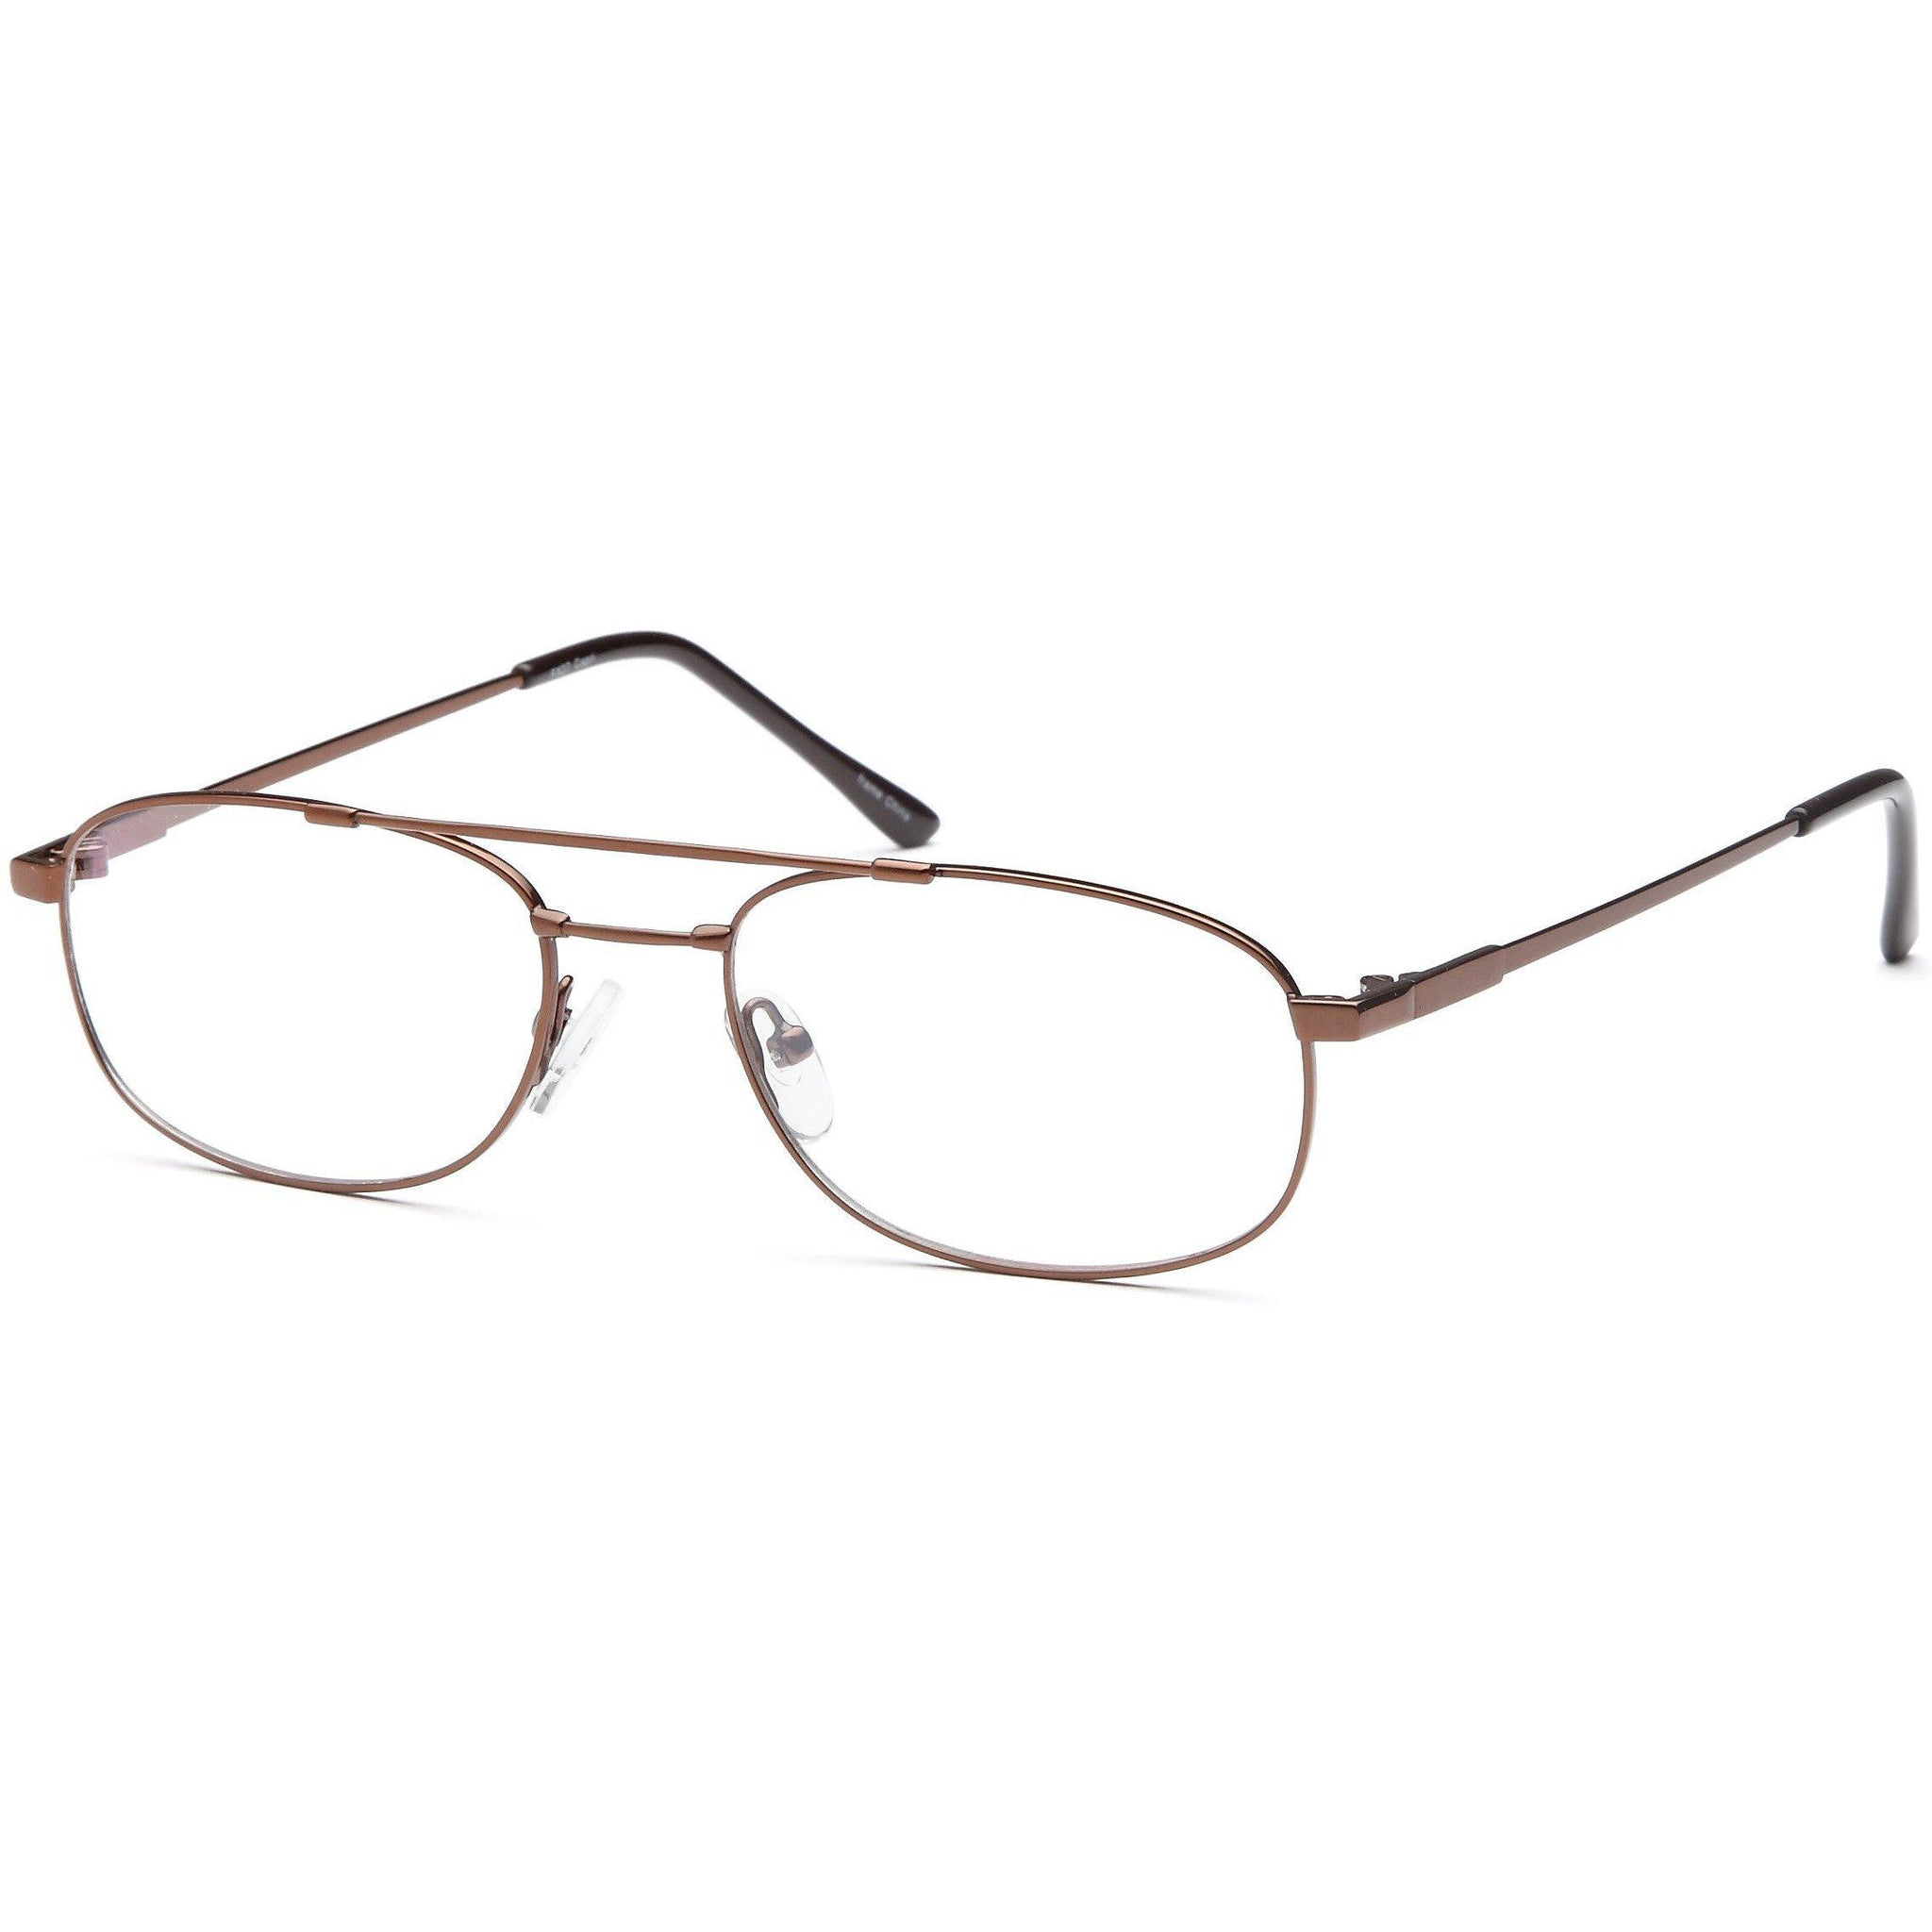 Titanium Prescription Glasses FX 27 Eyeglasses Frame